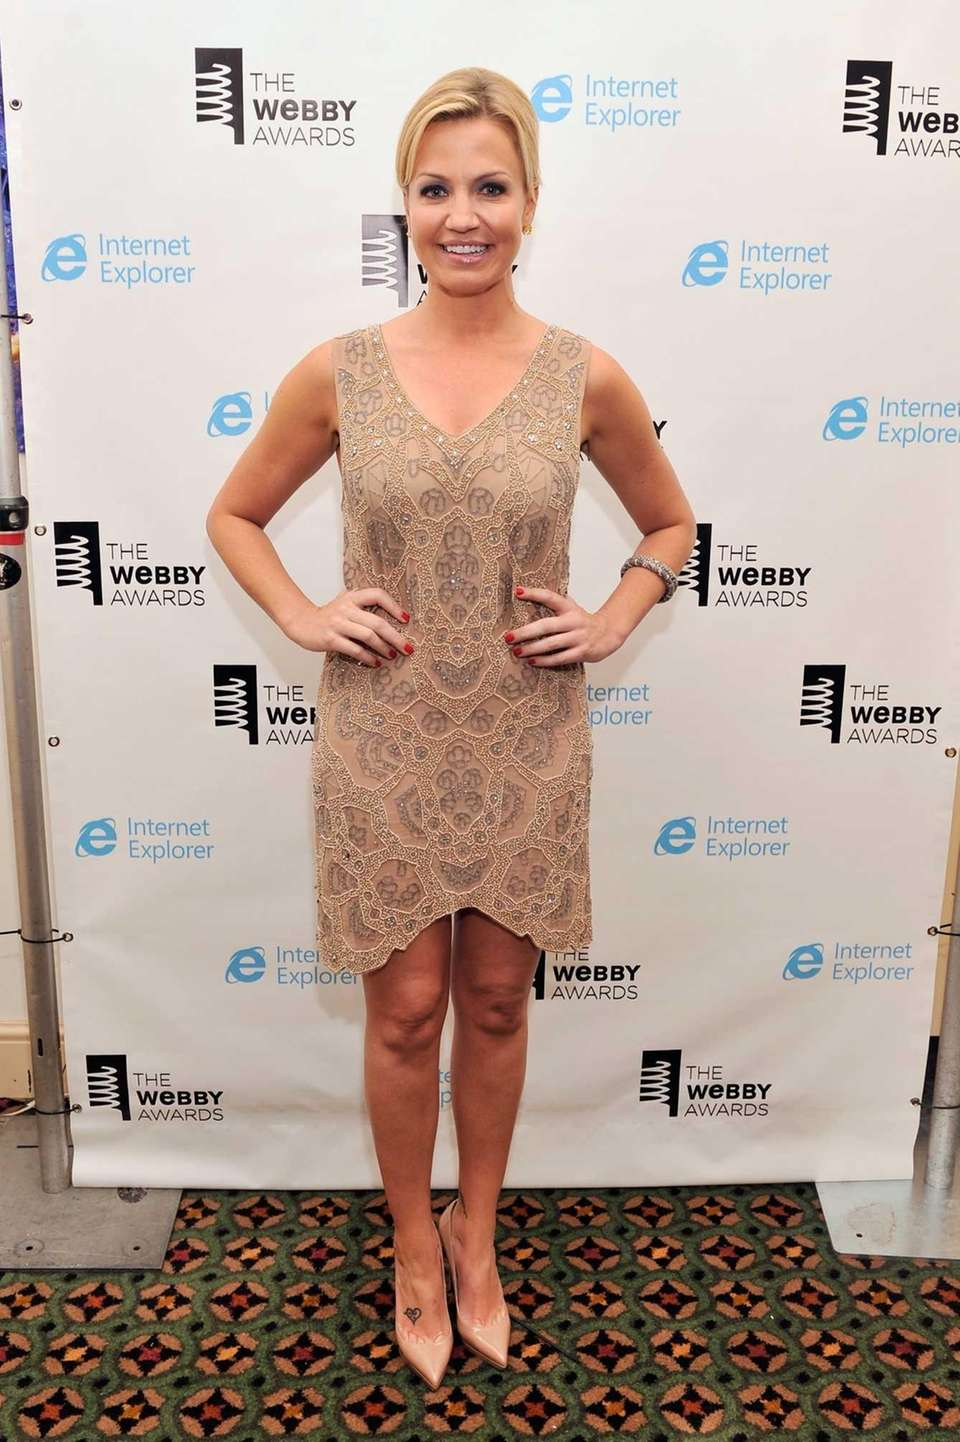 Michelle Beadle attends the 17th Annual Webby Awards